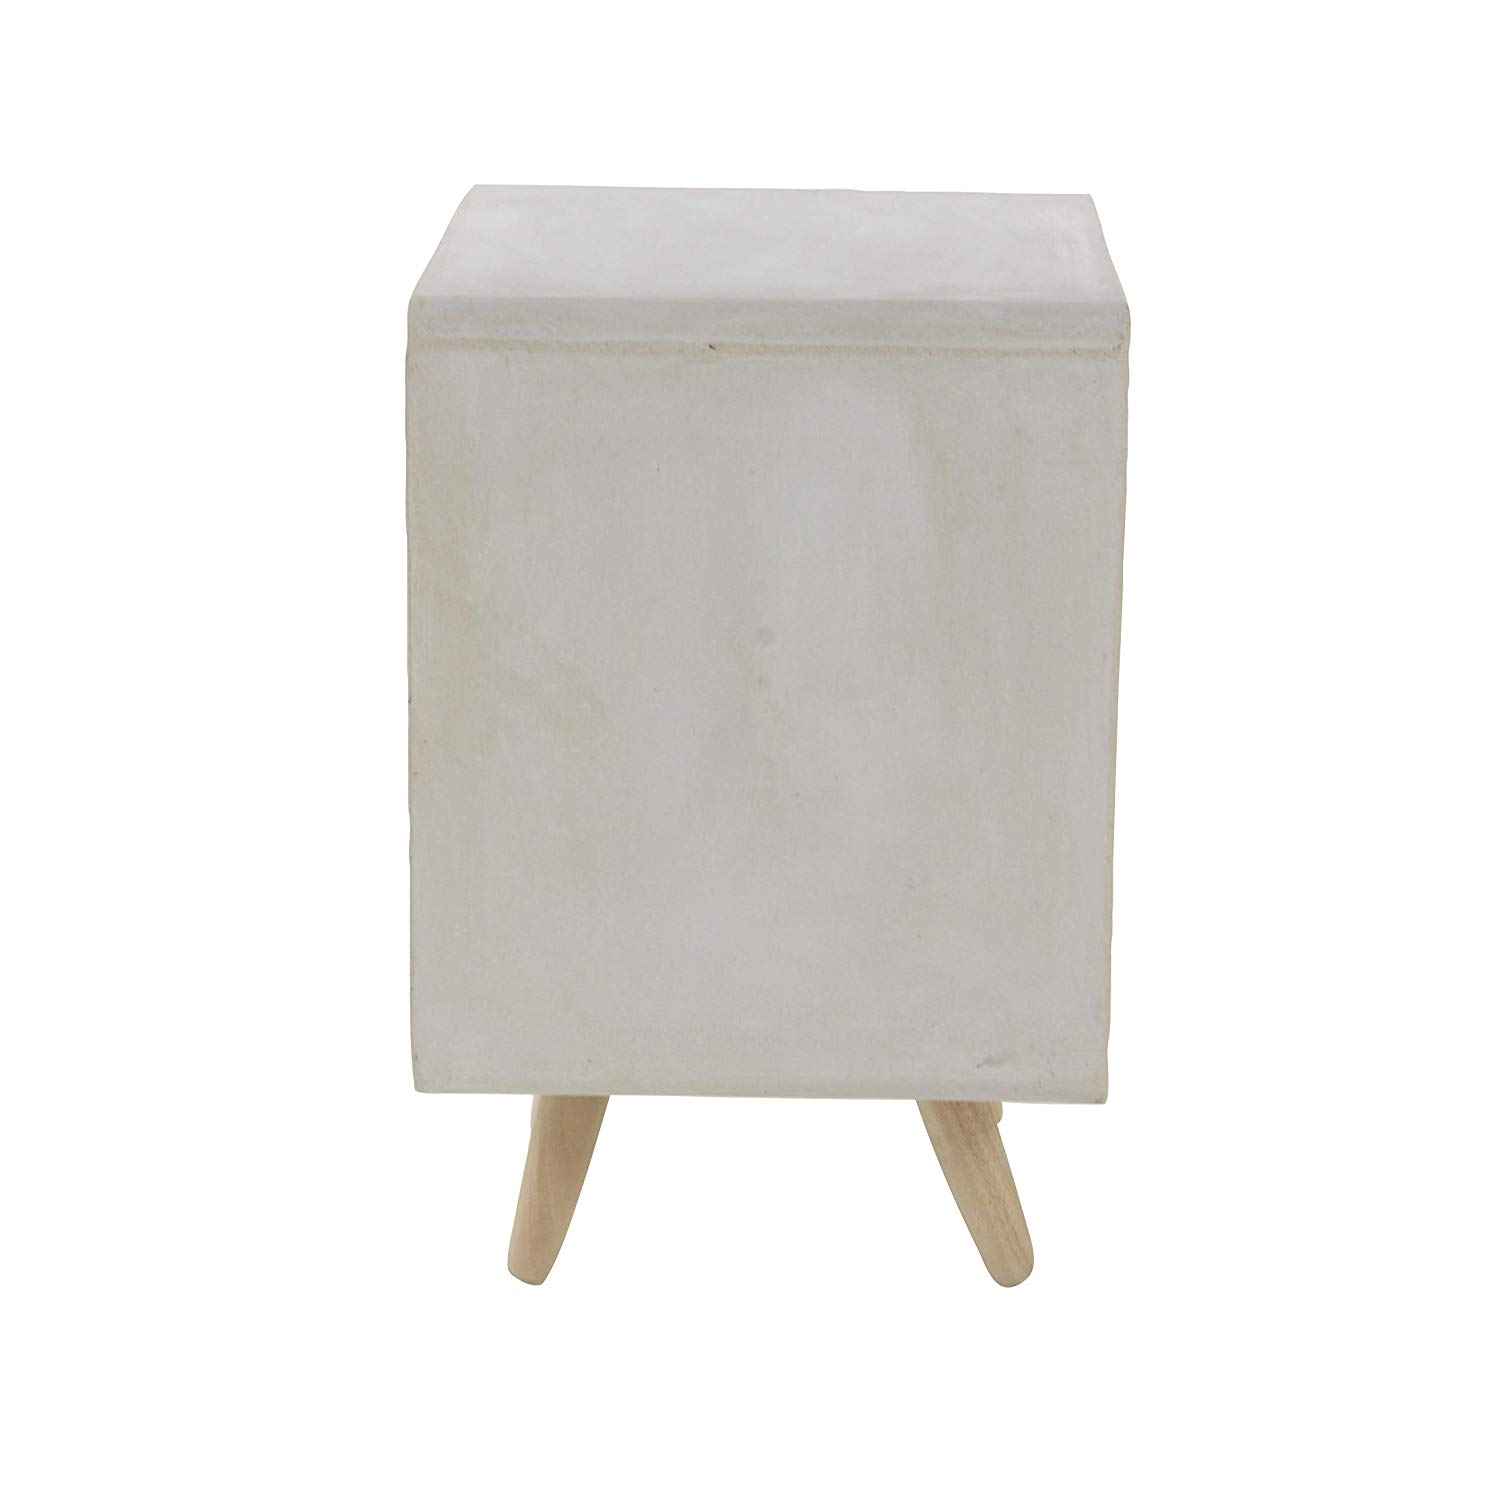 deco fiber clay and wood accent table cube white lightbrown kitchen dining rain drum venetian mirrored furniture living room end ideas black pilgrim small console chest inch round